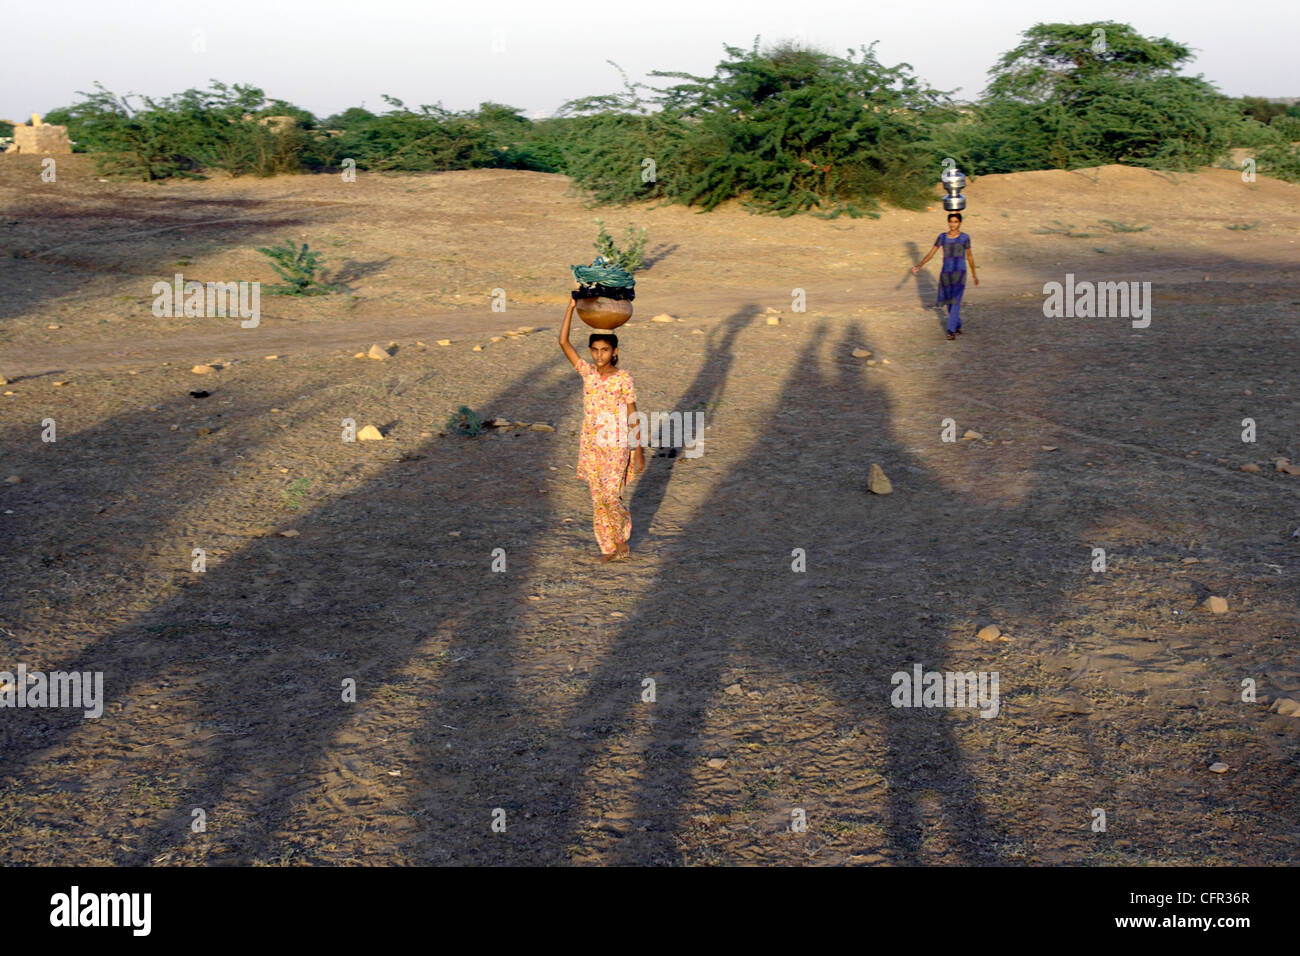 Niños en Jaisalmer. India. Stock Photo